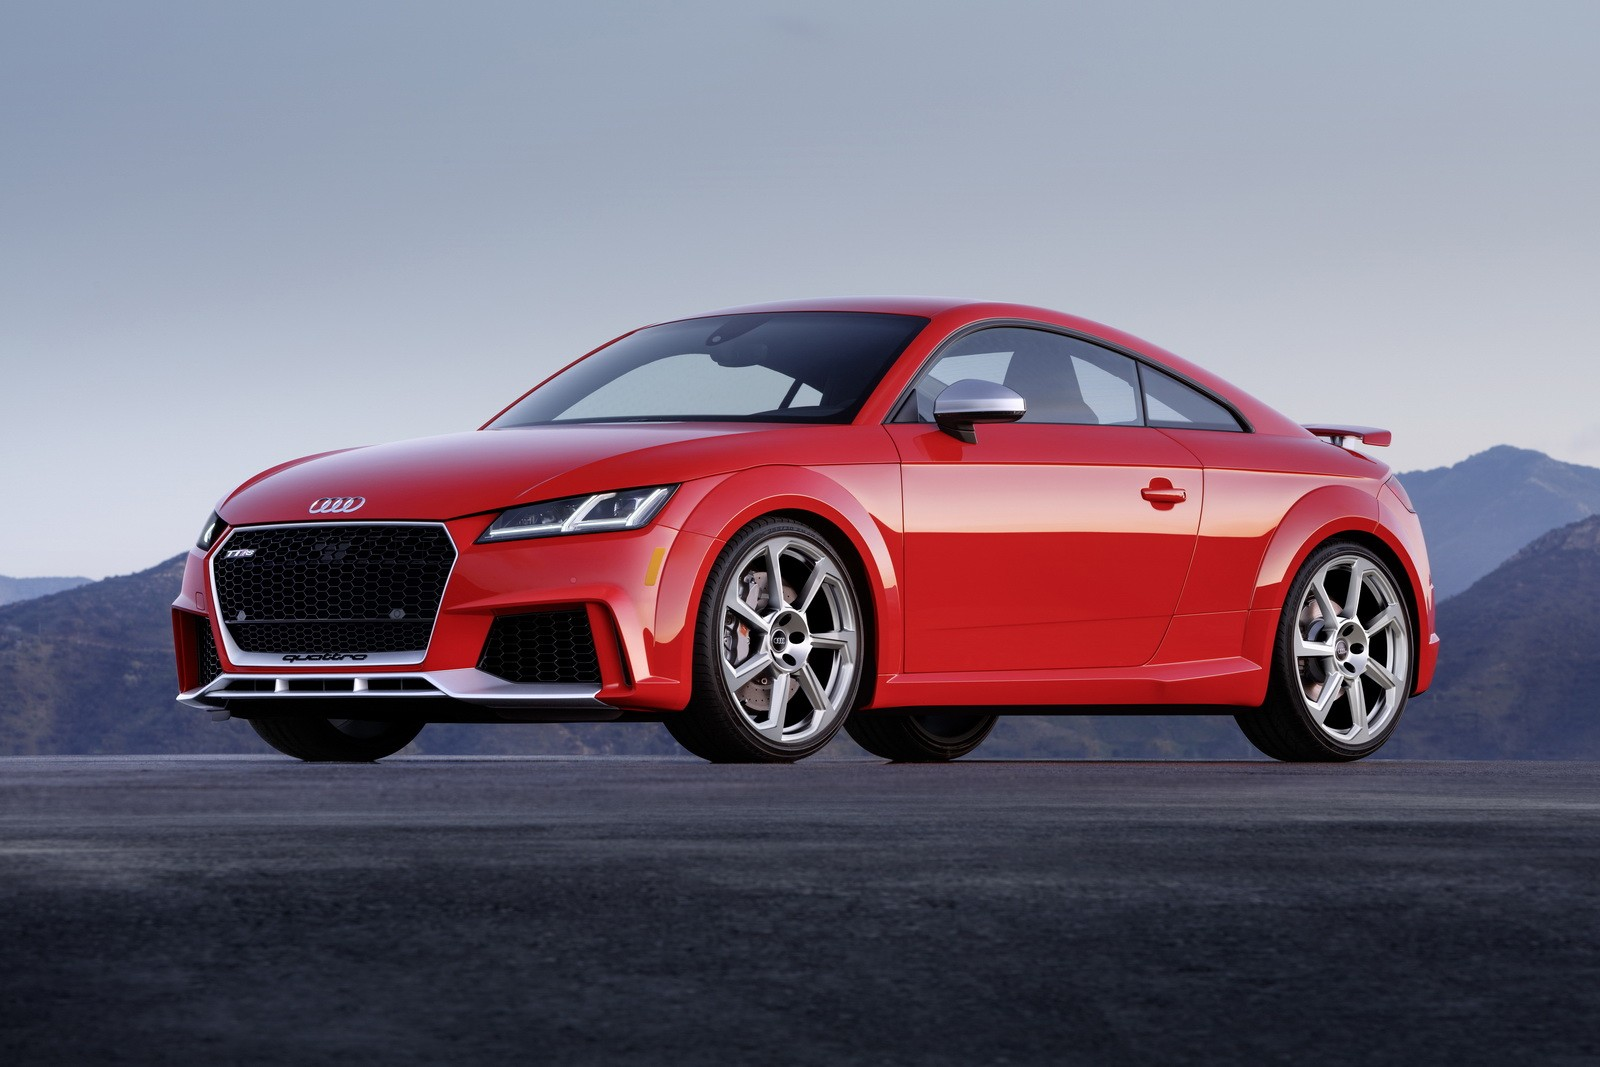 2018 audi tt rs costs 64 900 does 0 60 in 3 6 seconds autoevolution. Black Bedroom Furniture Sets. Home Design Ideas